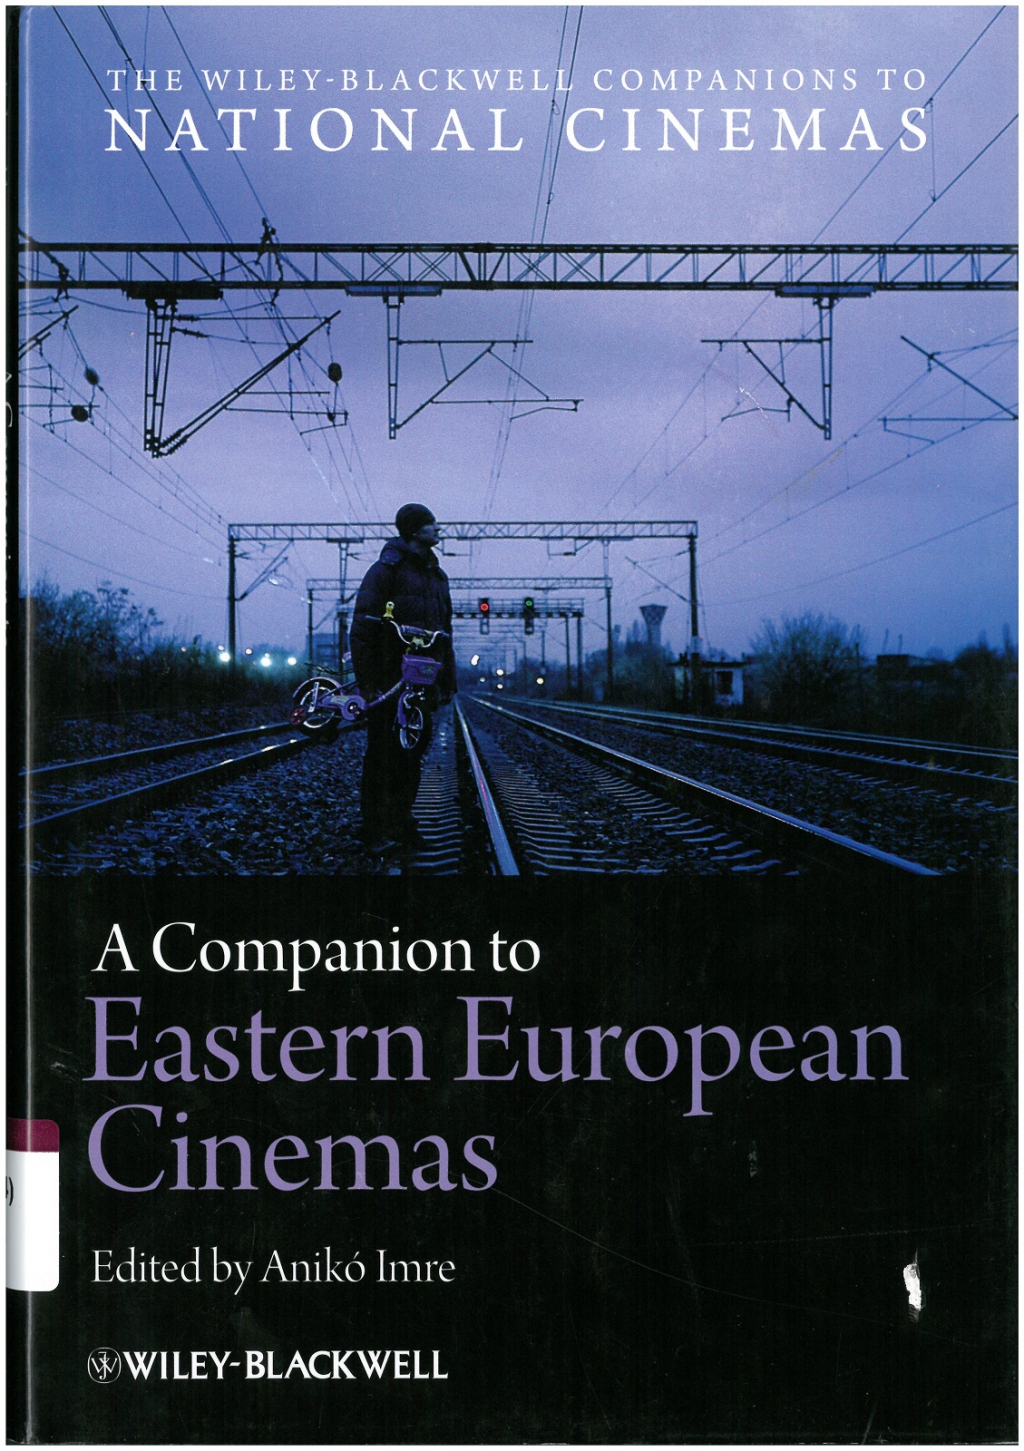 A companion to Eastern European cinemas.  Ed. by Anikó Imre. Malden: Wiley-Blackwell, 2012. 525 p. ISBN 9781444337259